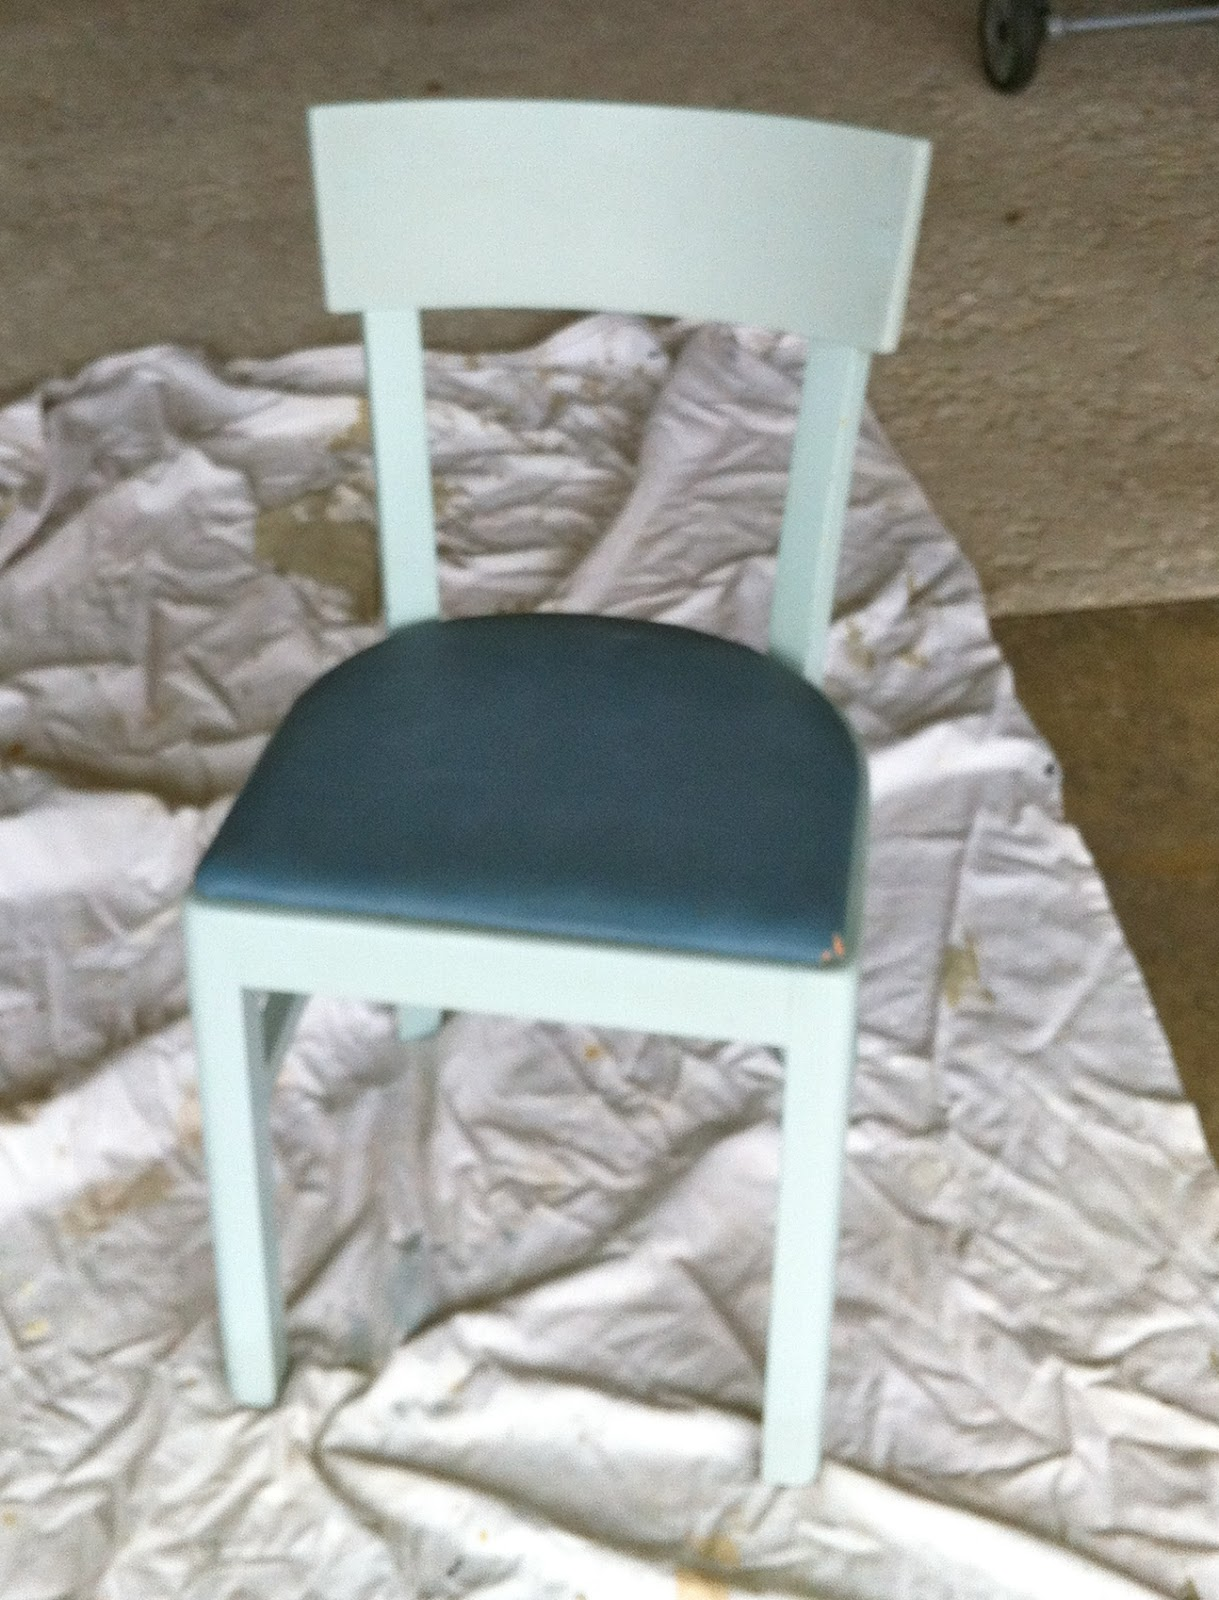 In The Hot Seat: Painting and Recovering Old Chairs | Home Everyday